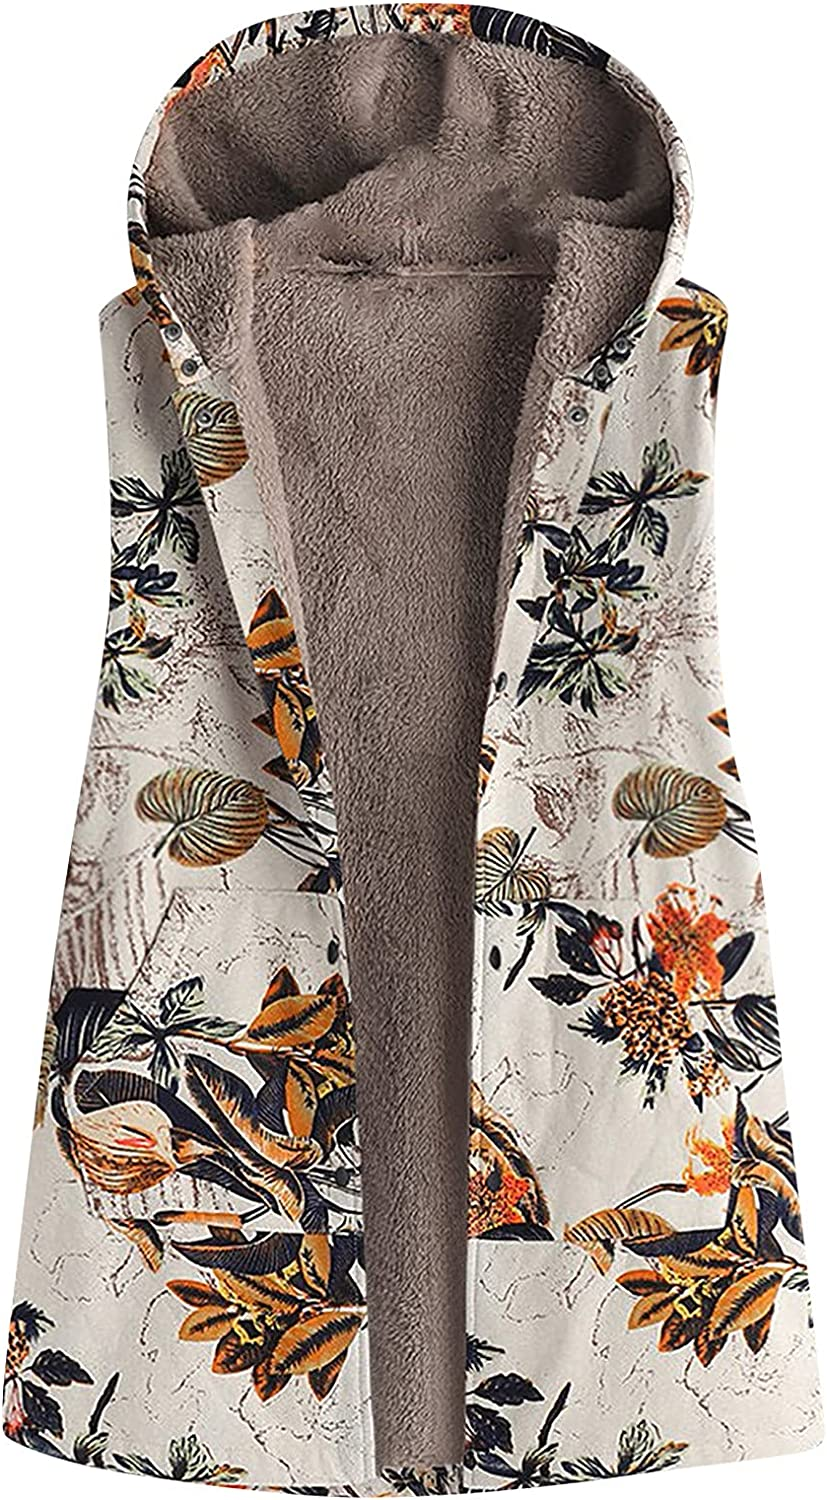 Women Casual Outerwear Vest Retro Floral Printed Hooded Top Coat Sleeveless Pocket Plush Jacket